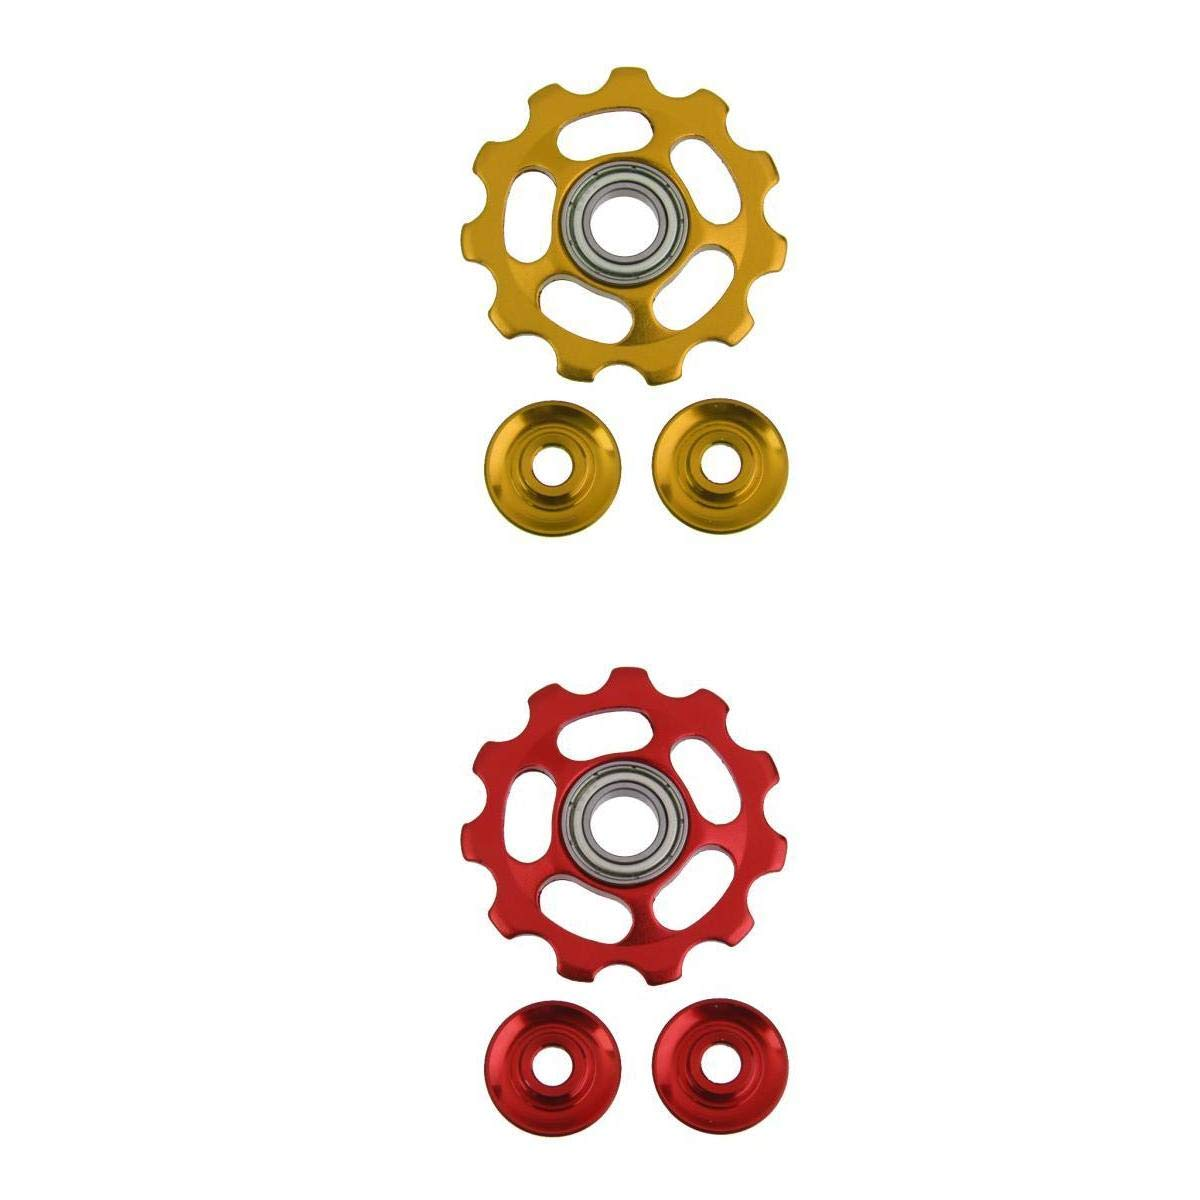 MagiDeal 2pcs 11T Bicycle Ceramic Bearing Jockey Wheel Pulley Roller Rear Derailleur Golden Red non-brand